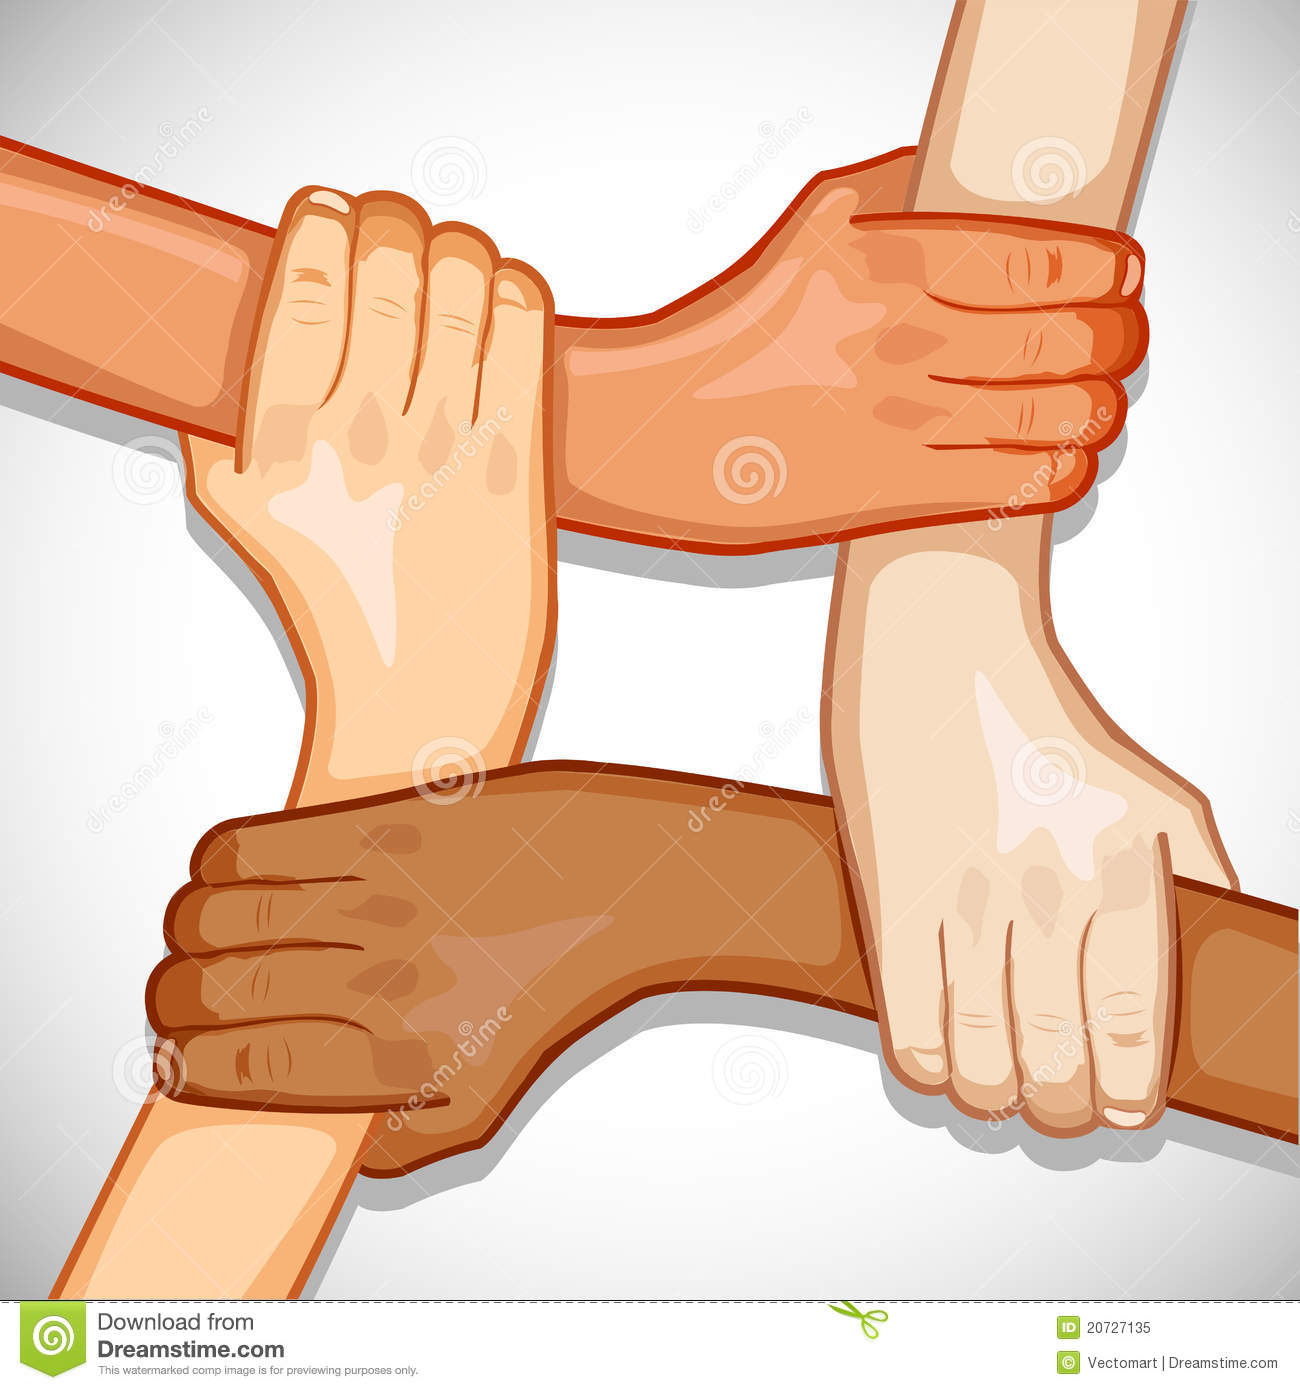 hands for unity royalty free stock photo image 20727135 Law and Justice Clip Art Scales of Justice with Gavel